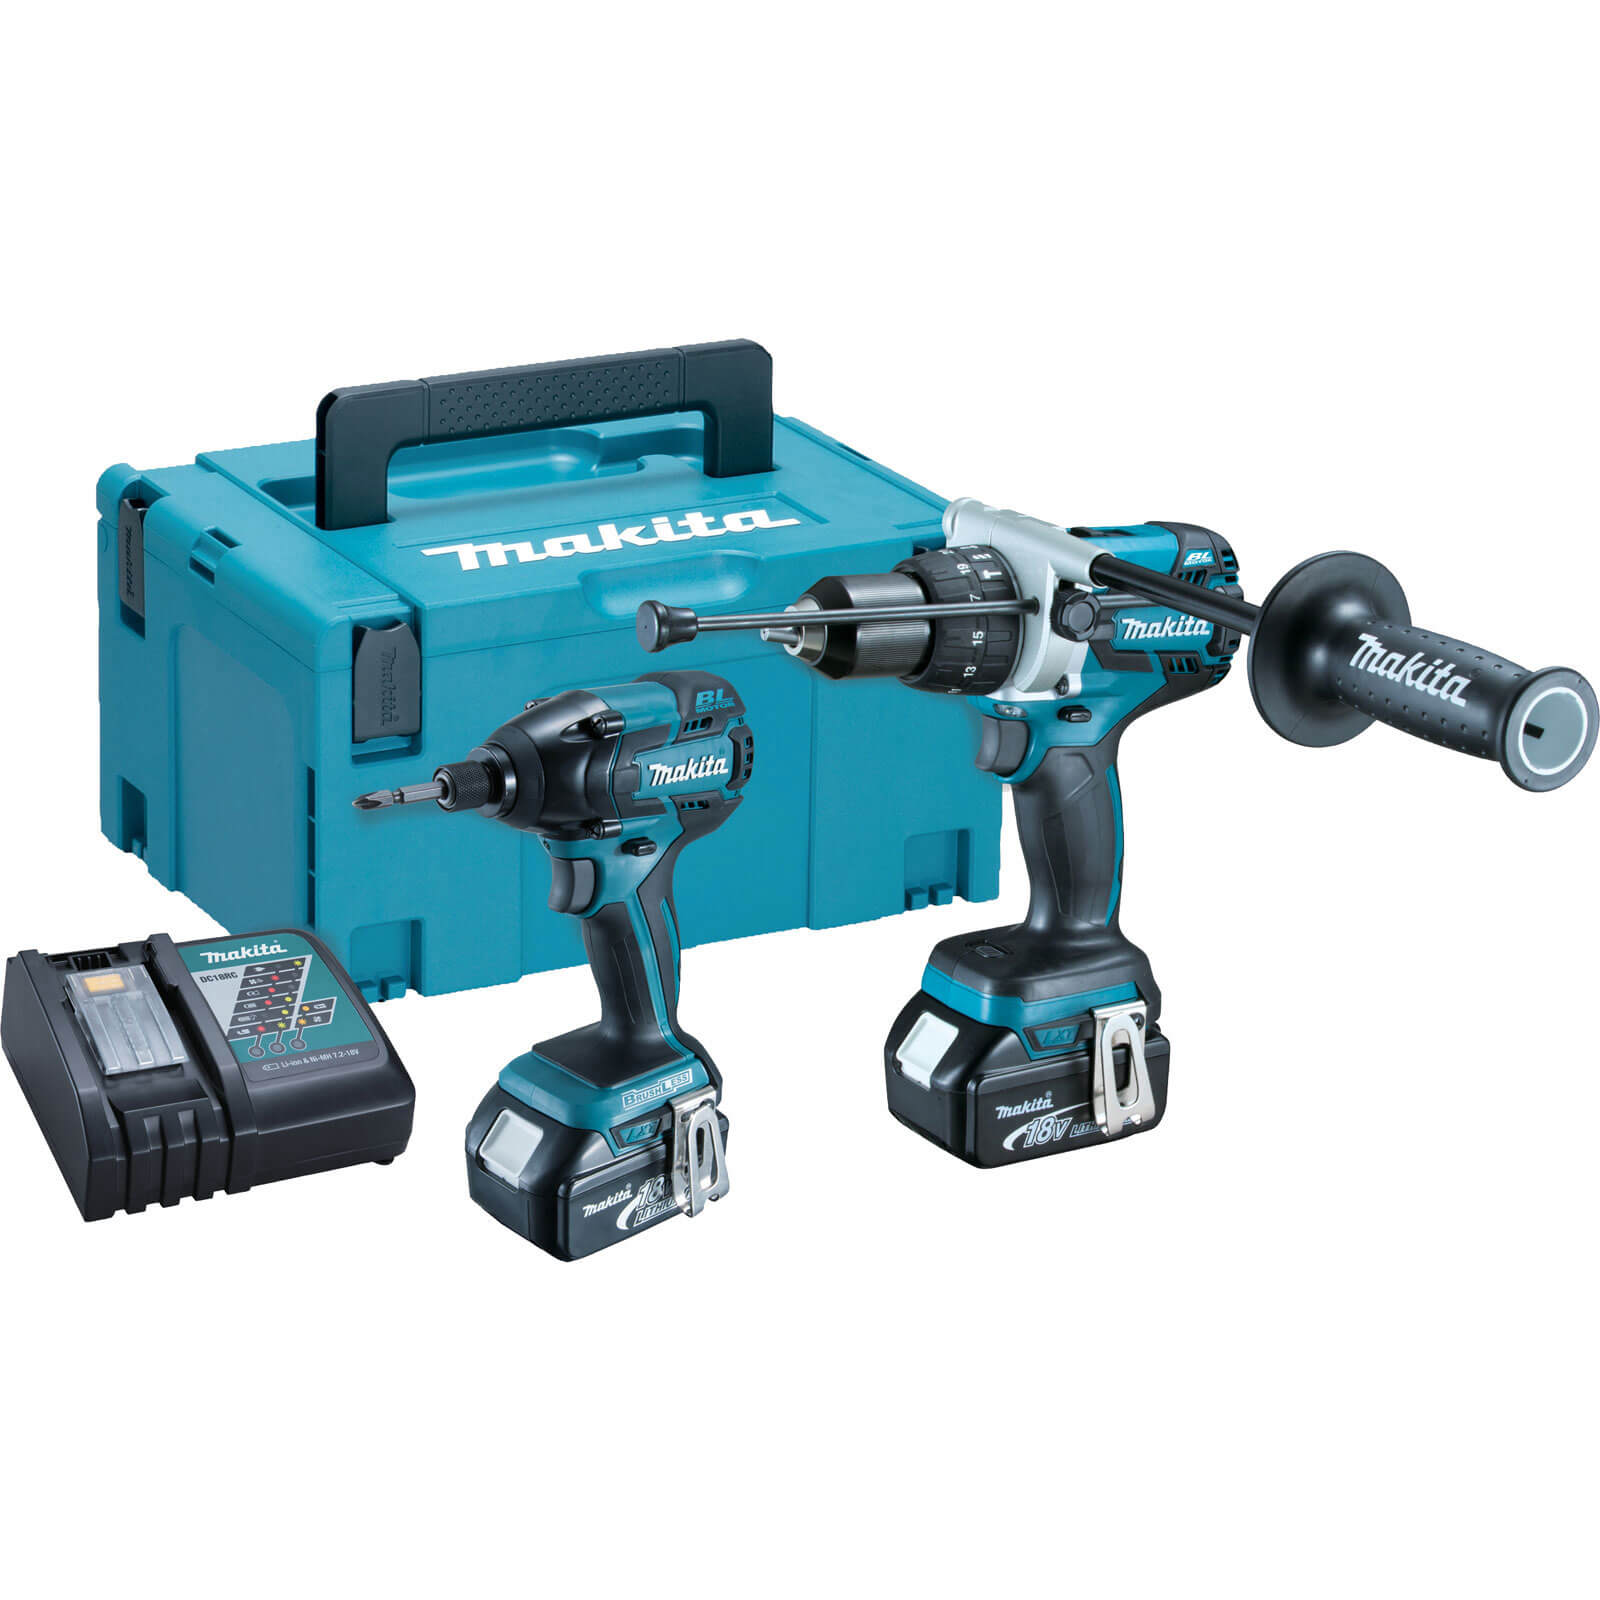 Makita DLX2040MJ 18V LXT Cordless Brushless Combi Drill & Impact Driver 2 x 4ah Liion Charger Case